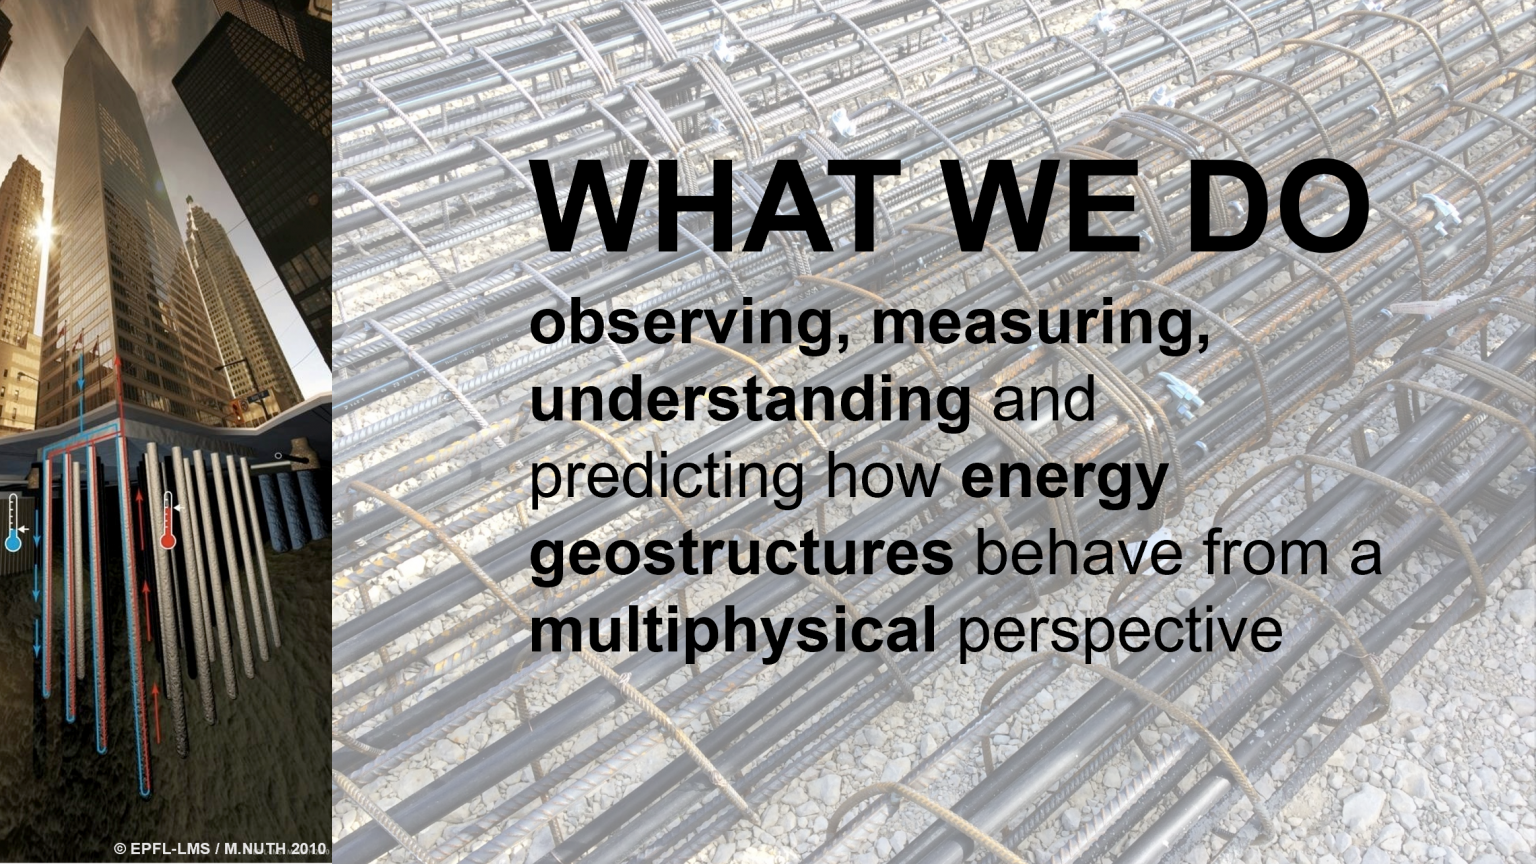 Energy Geostructures – LMS